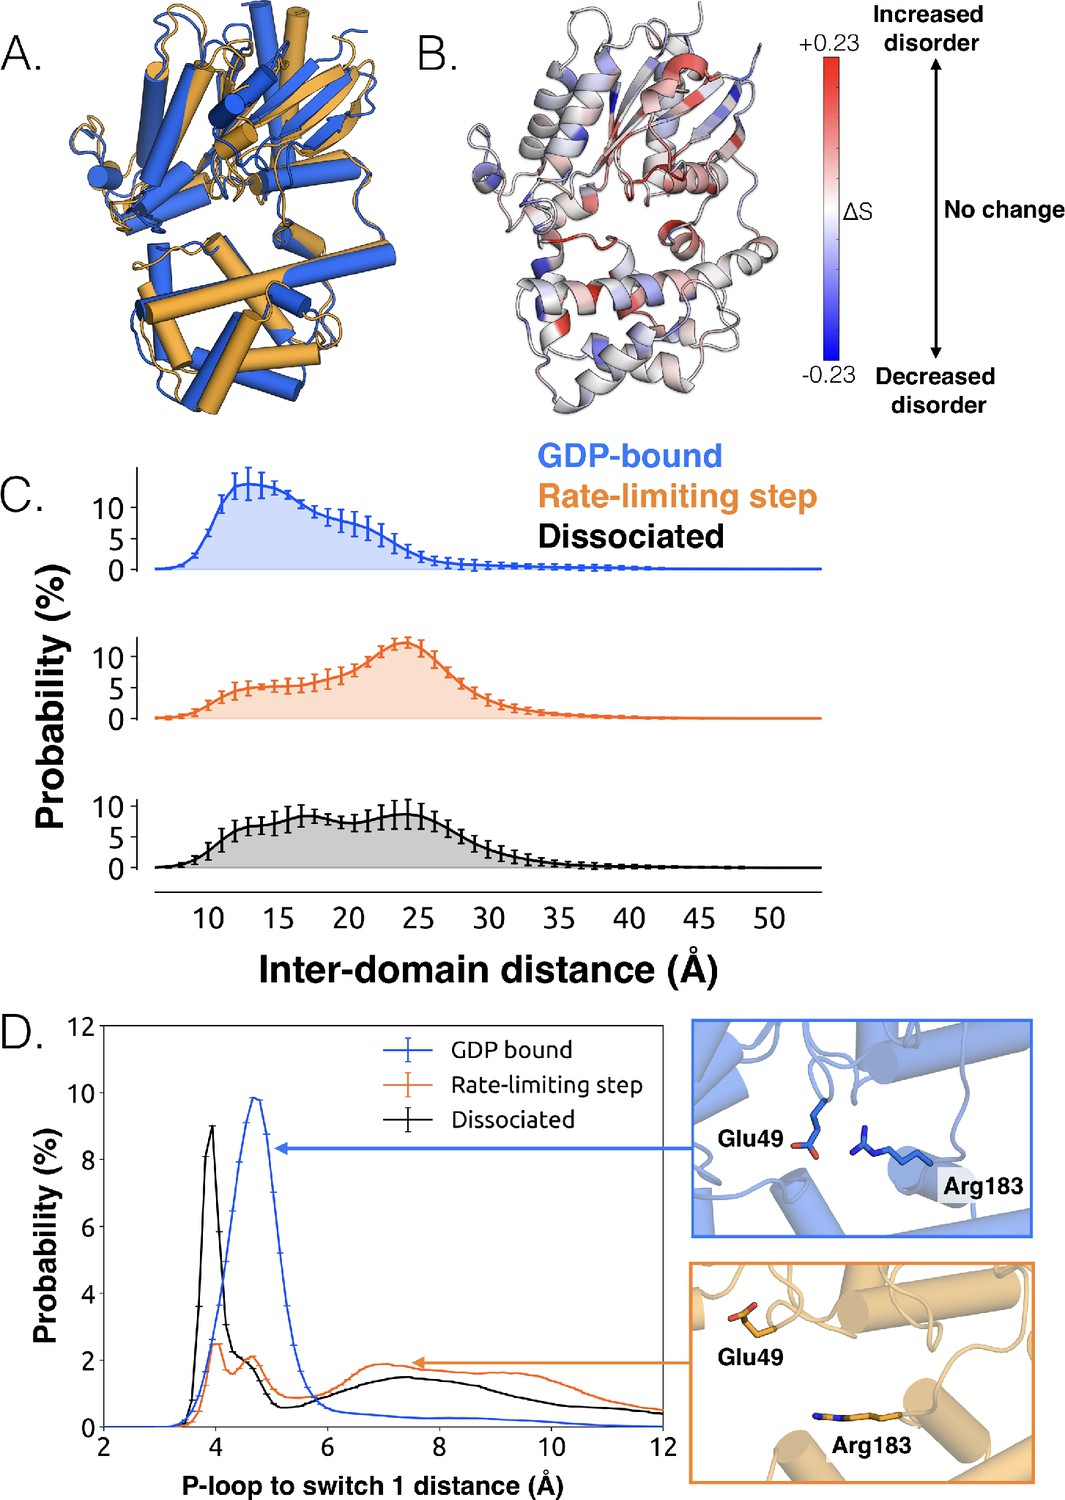 Simulation of spontaneous G protein activation reveals a new